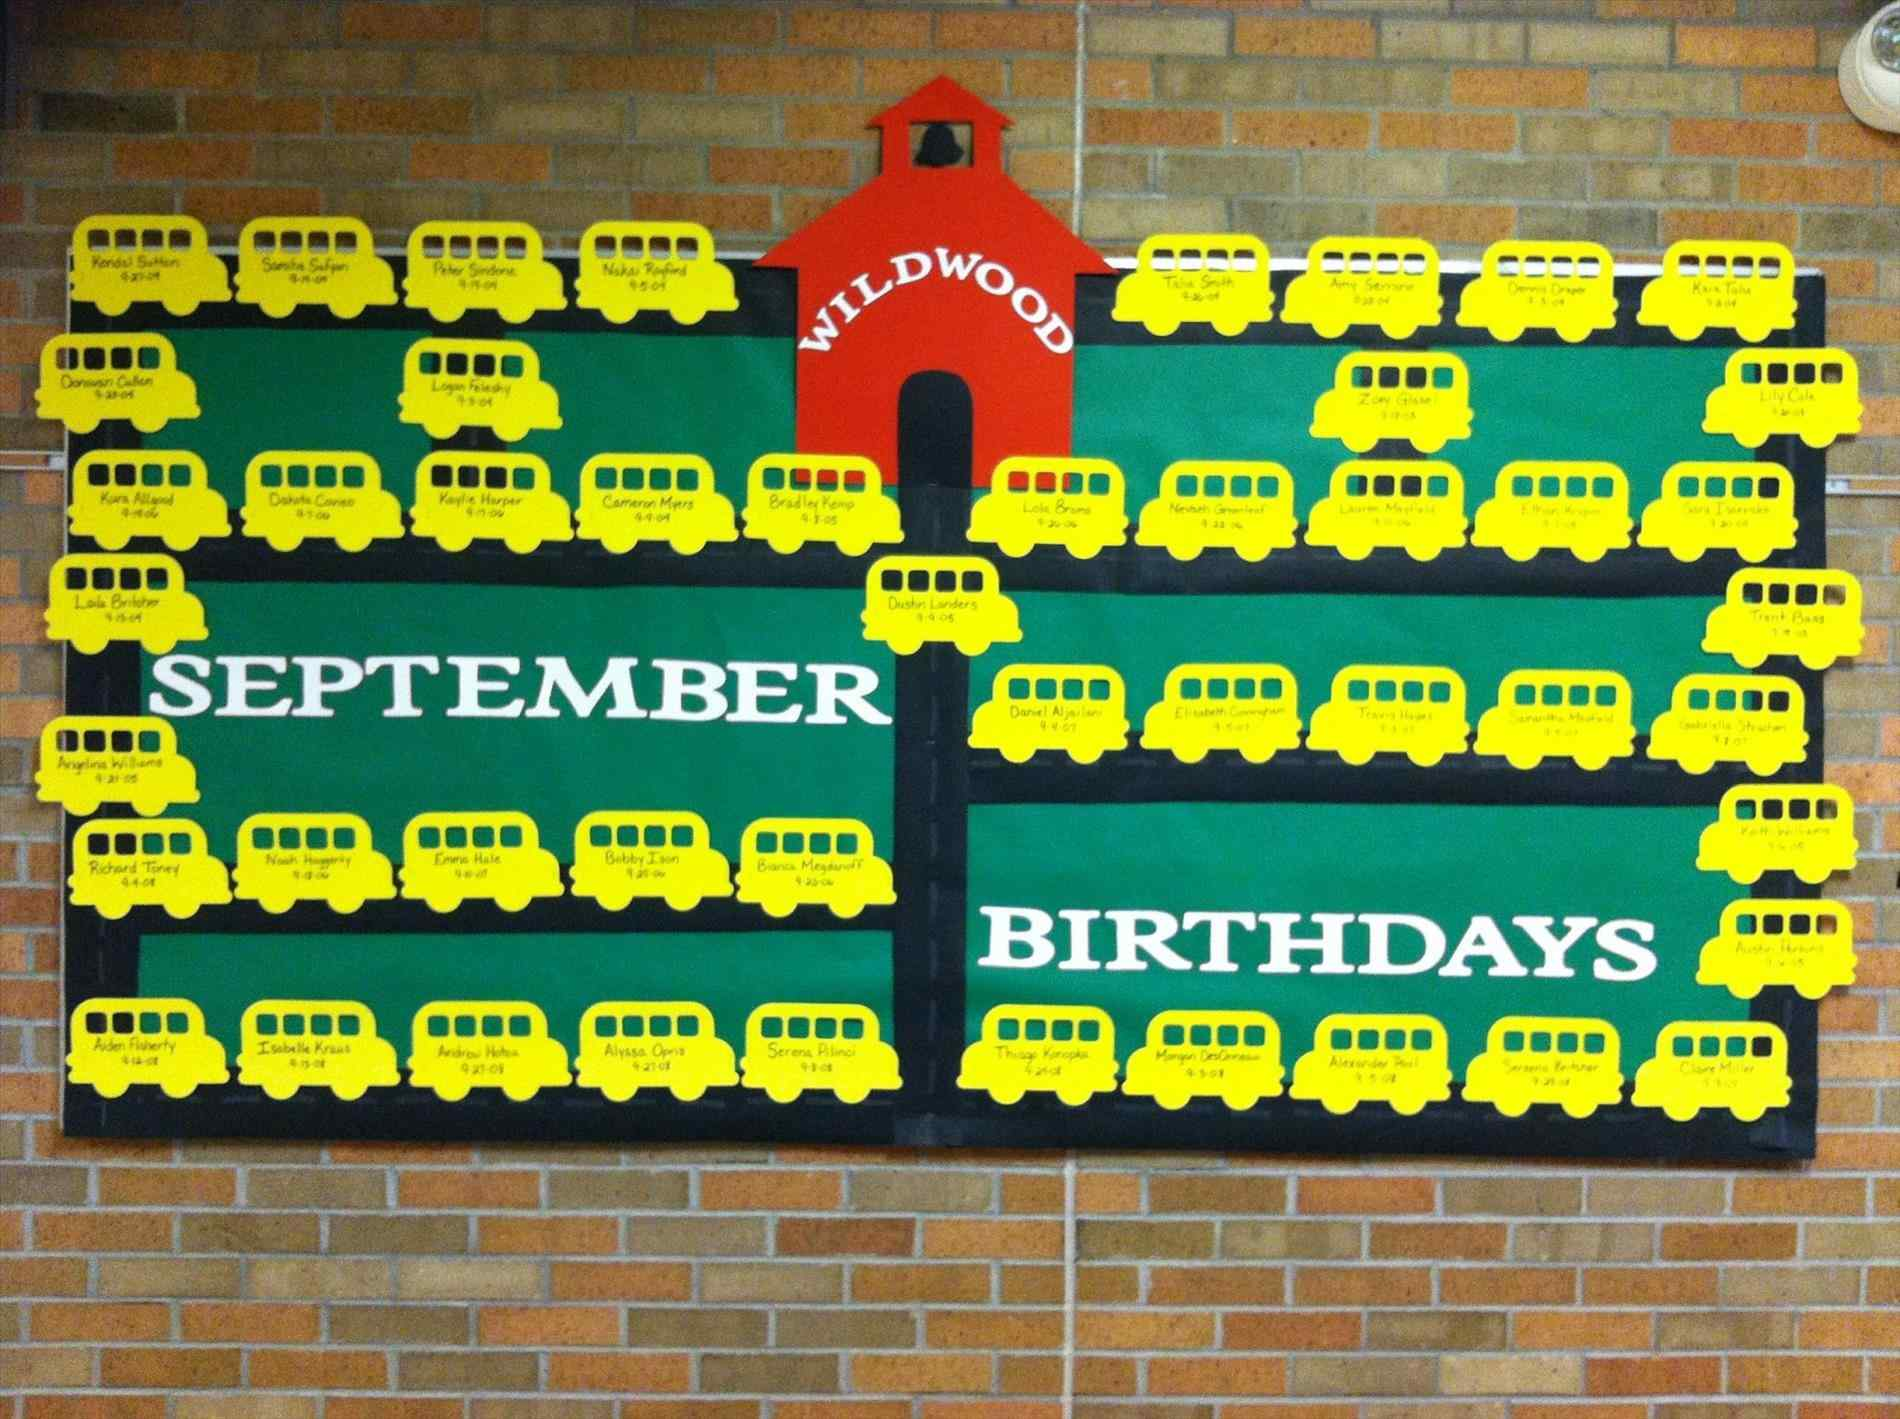 poster board ideas for birthday ; Ideas-birthday-party-parties-pinterest-themes-poster-board-ideas-for-with-themes-Poster-Board-Background-Ideas-birthday-poster-board-ideas-for-with-great